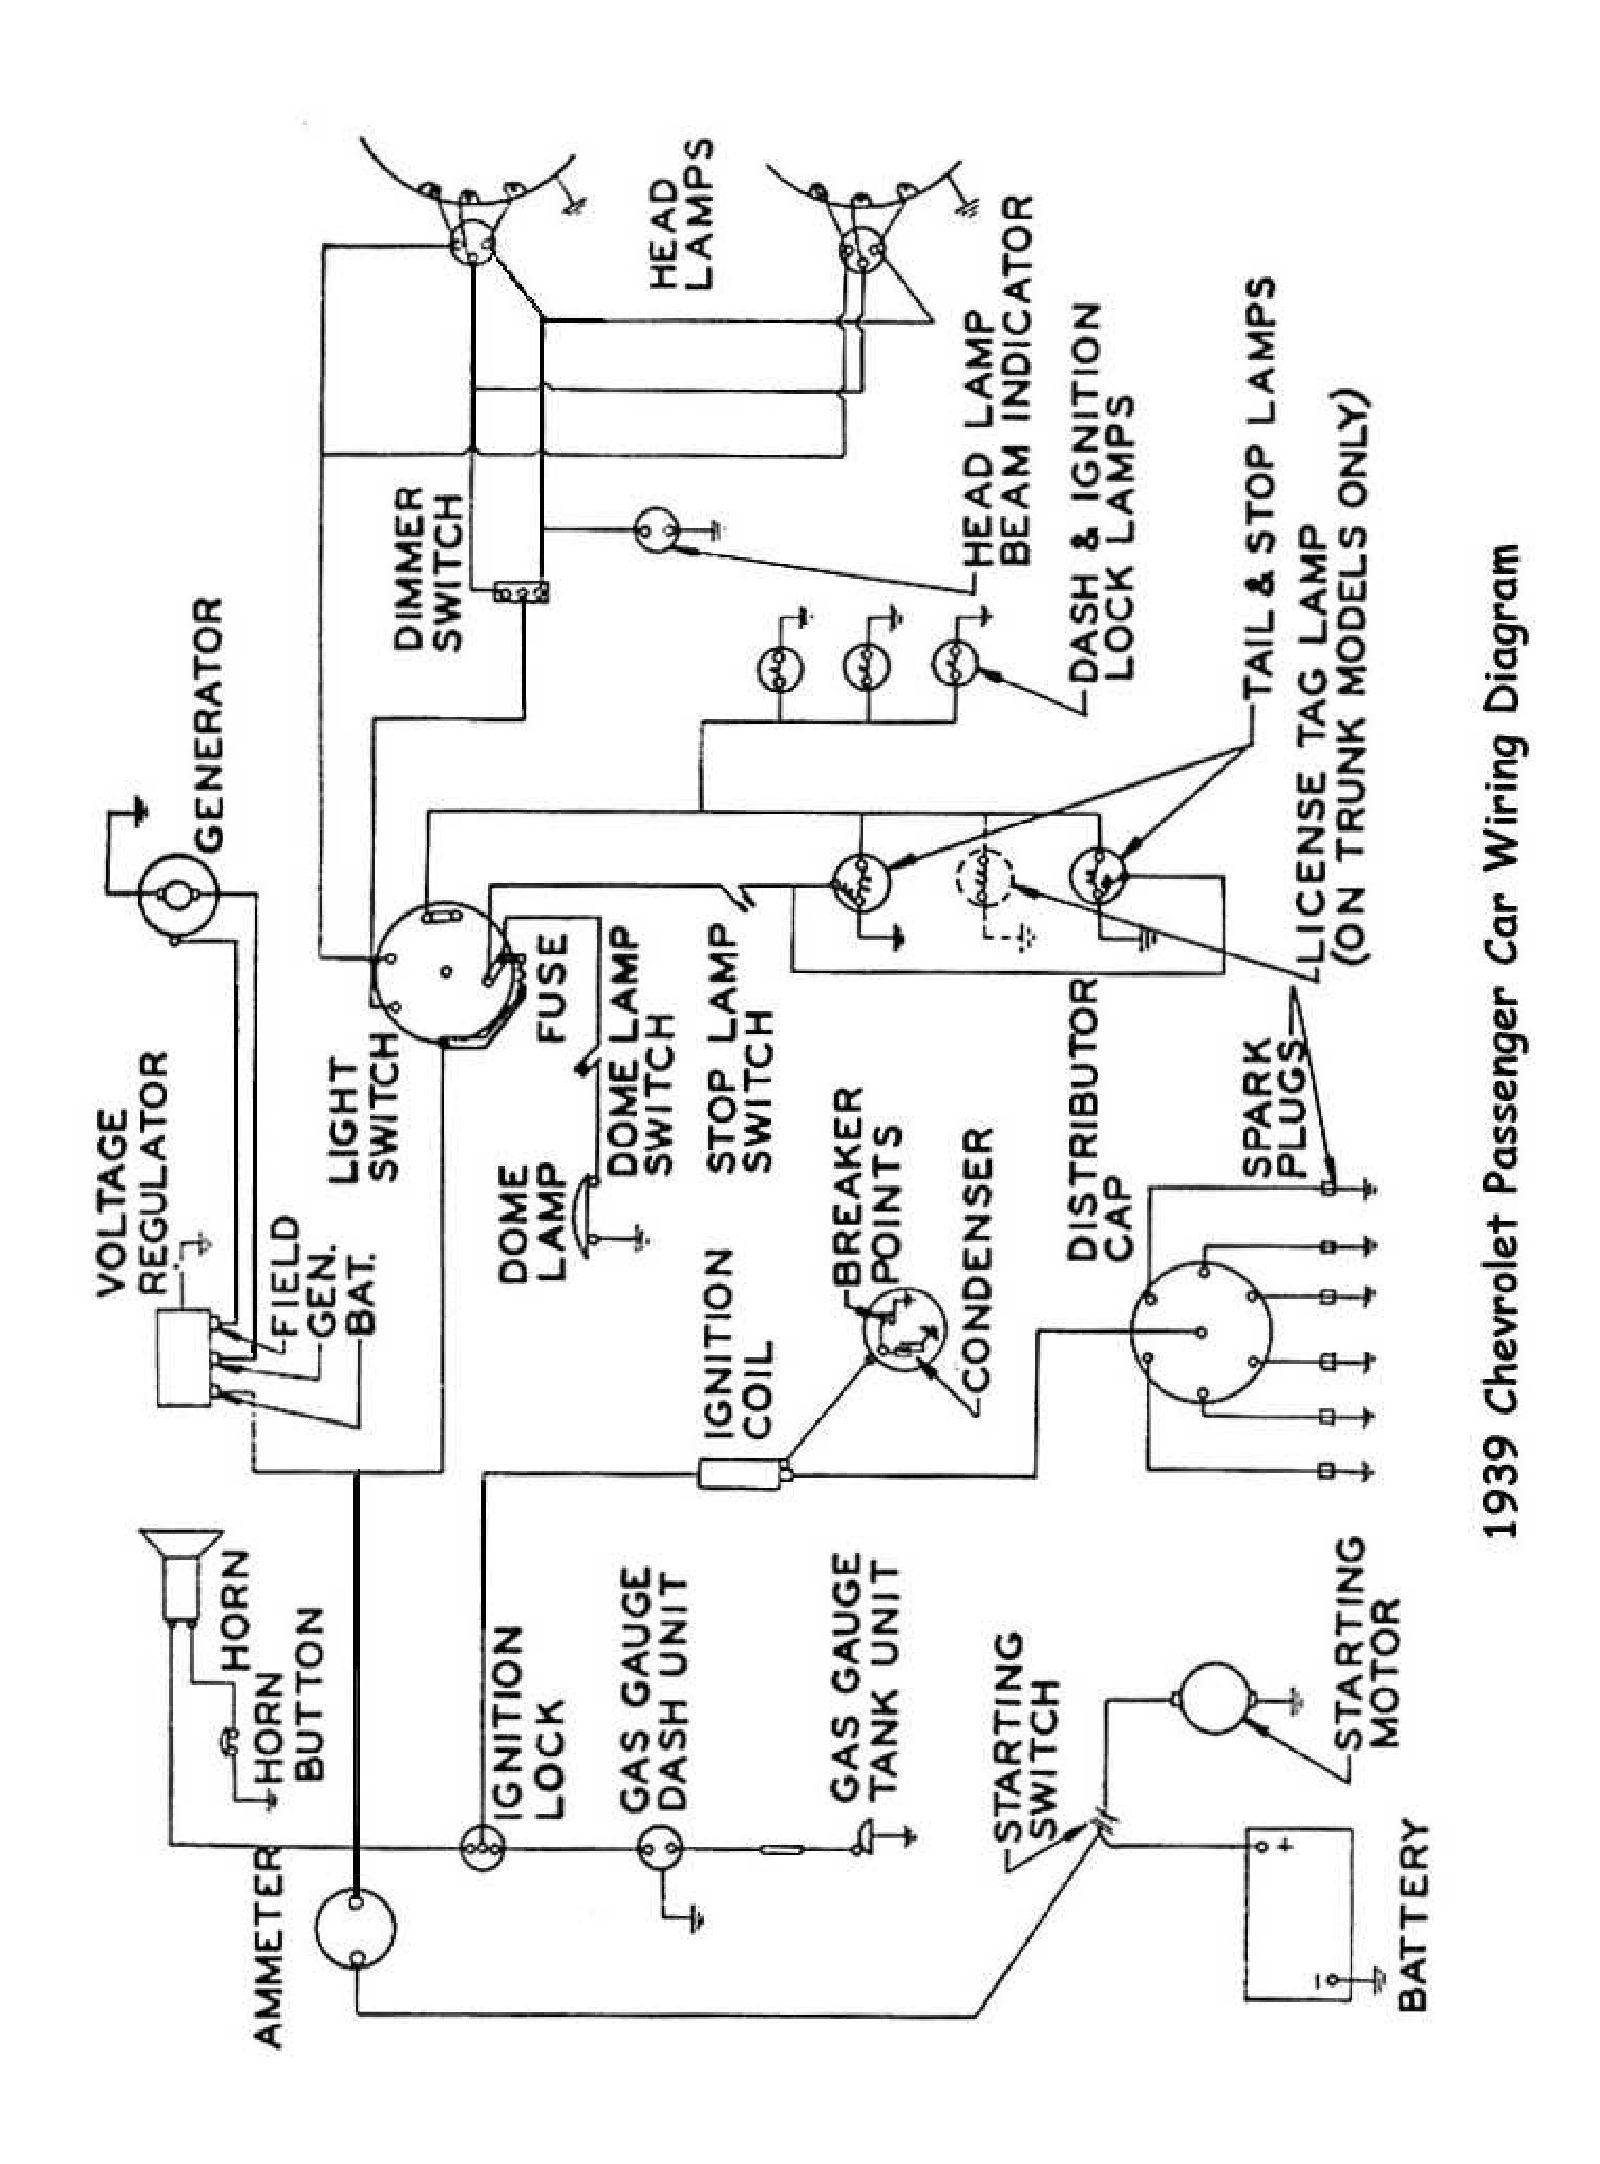 Pin on Amplifier John Deere Wiring Diagram on john deere 4320 crankshaft, john deere 4320 engine, john deere z225 wiring-diagram, john deere 180 wiring-diagram, john deere 455 wiring-diagram, john deere 4320 service manual, john deere 4320 battery, john deere 4320 repair, jd 4020 24 volt wiring diagram, john deere 4320 water pump, john deere 4320 oil filter, john deere 4320 controls diagram, john deere 4320 cab tractor, john deere 445 wiring-diagram, john deere 1020 wiring-diagram, john deere 4320 specifications, john deere 4320 flywheel, john deere 4320 parts, john deere 4300 wiring-diagram, john deere 265 wiring schematic,